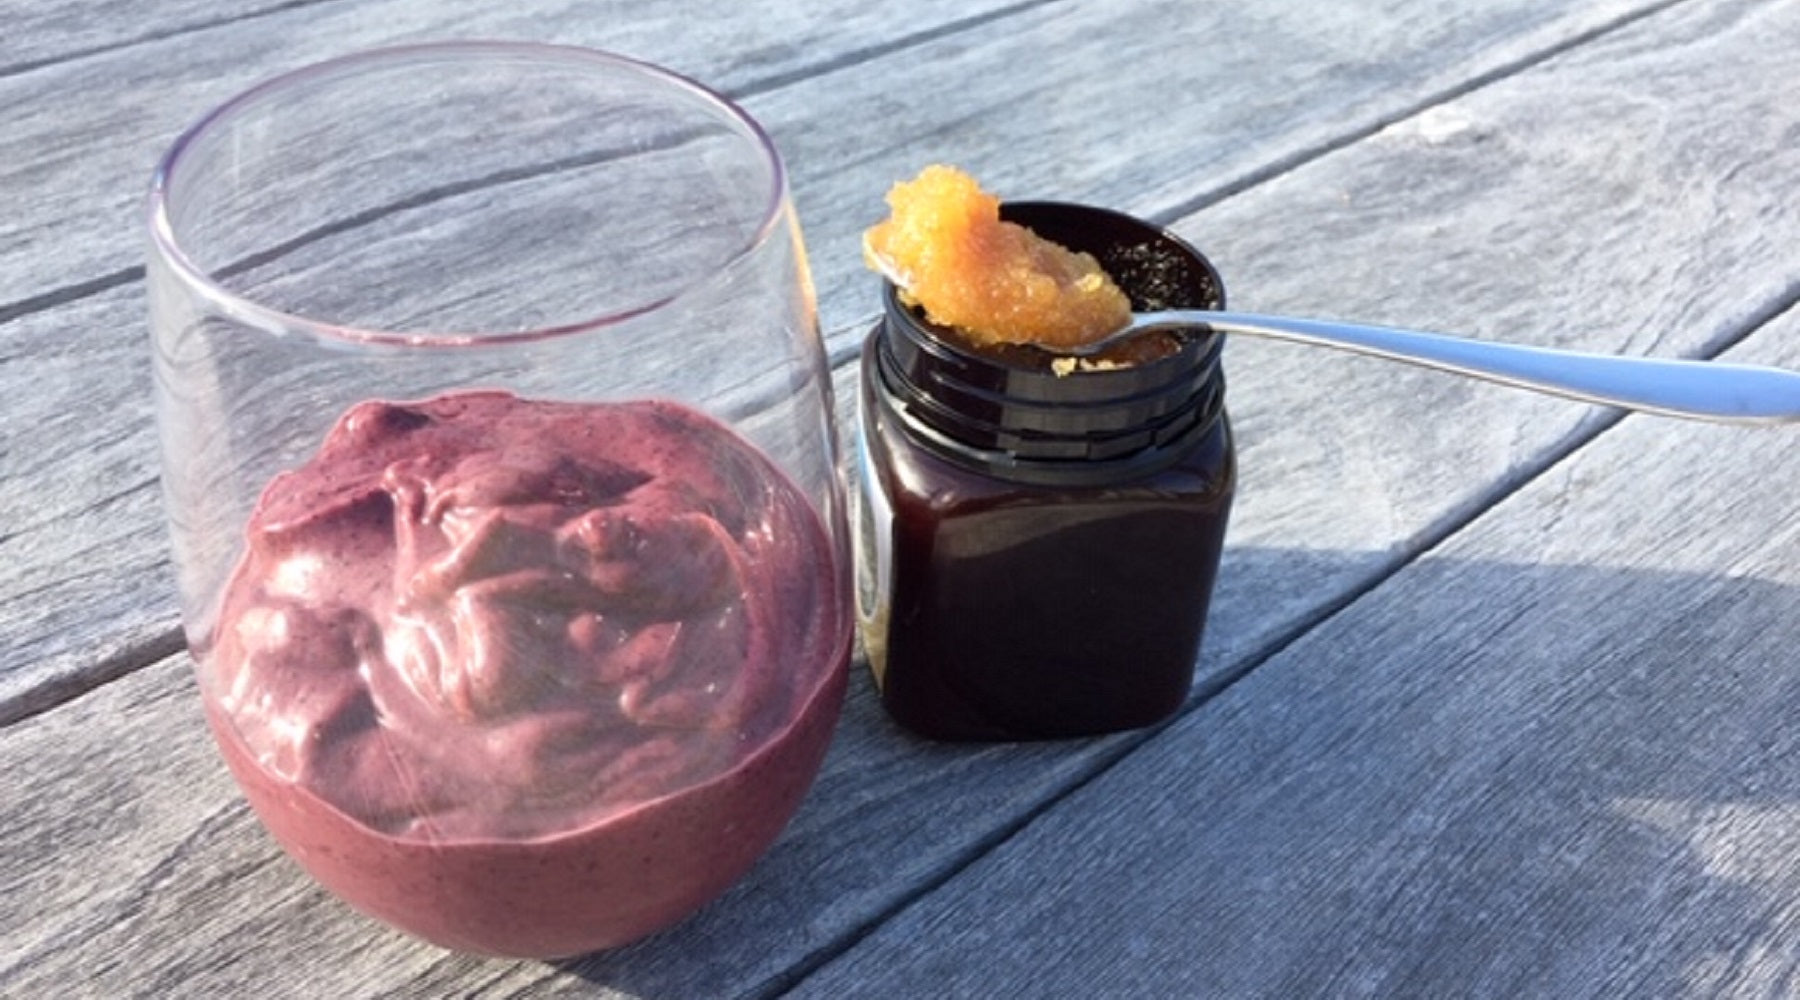 Blueberry, Avocado and Manuka Honey Mousse